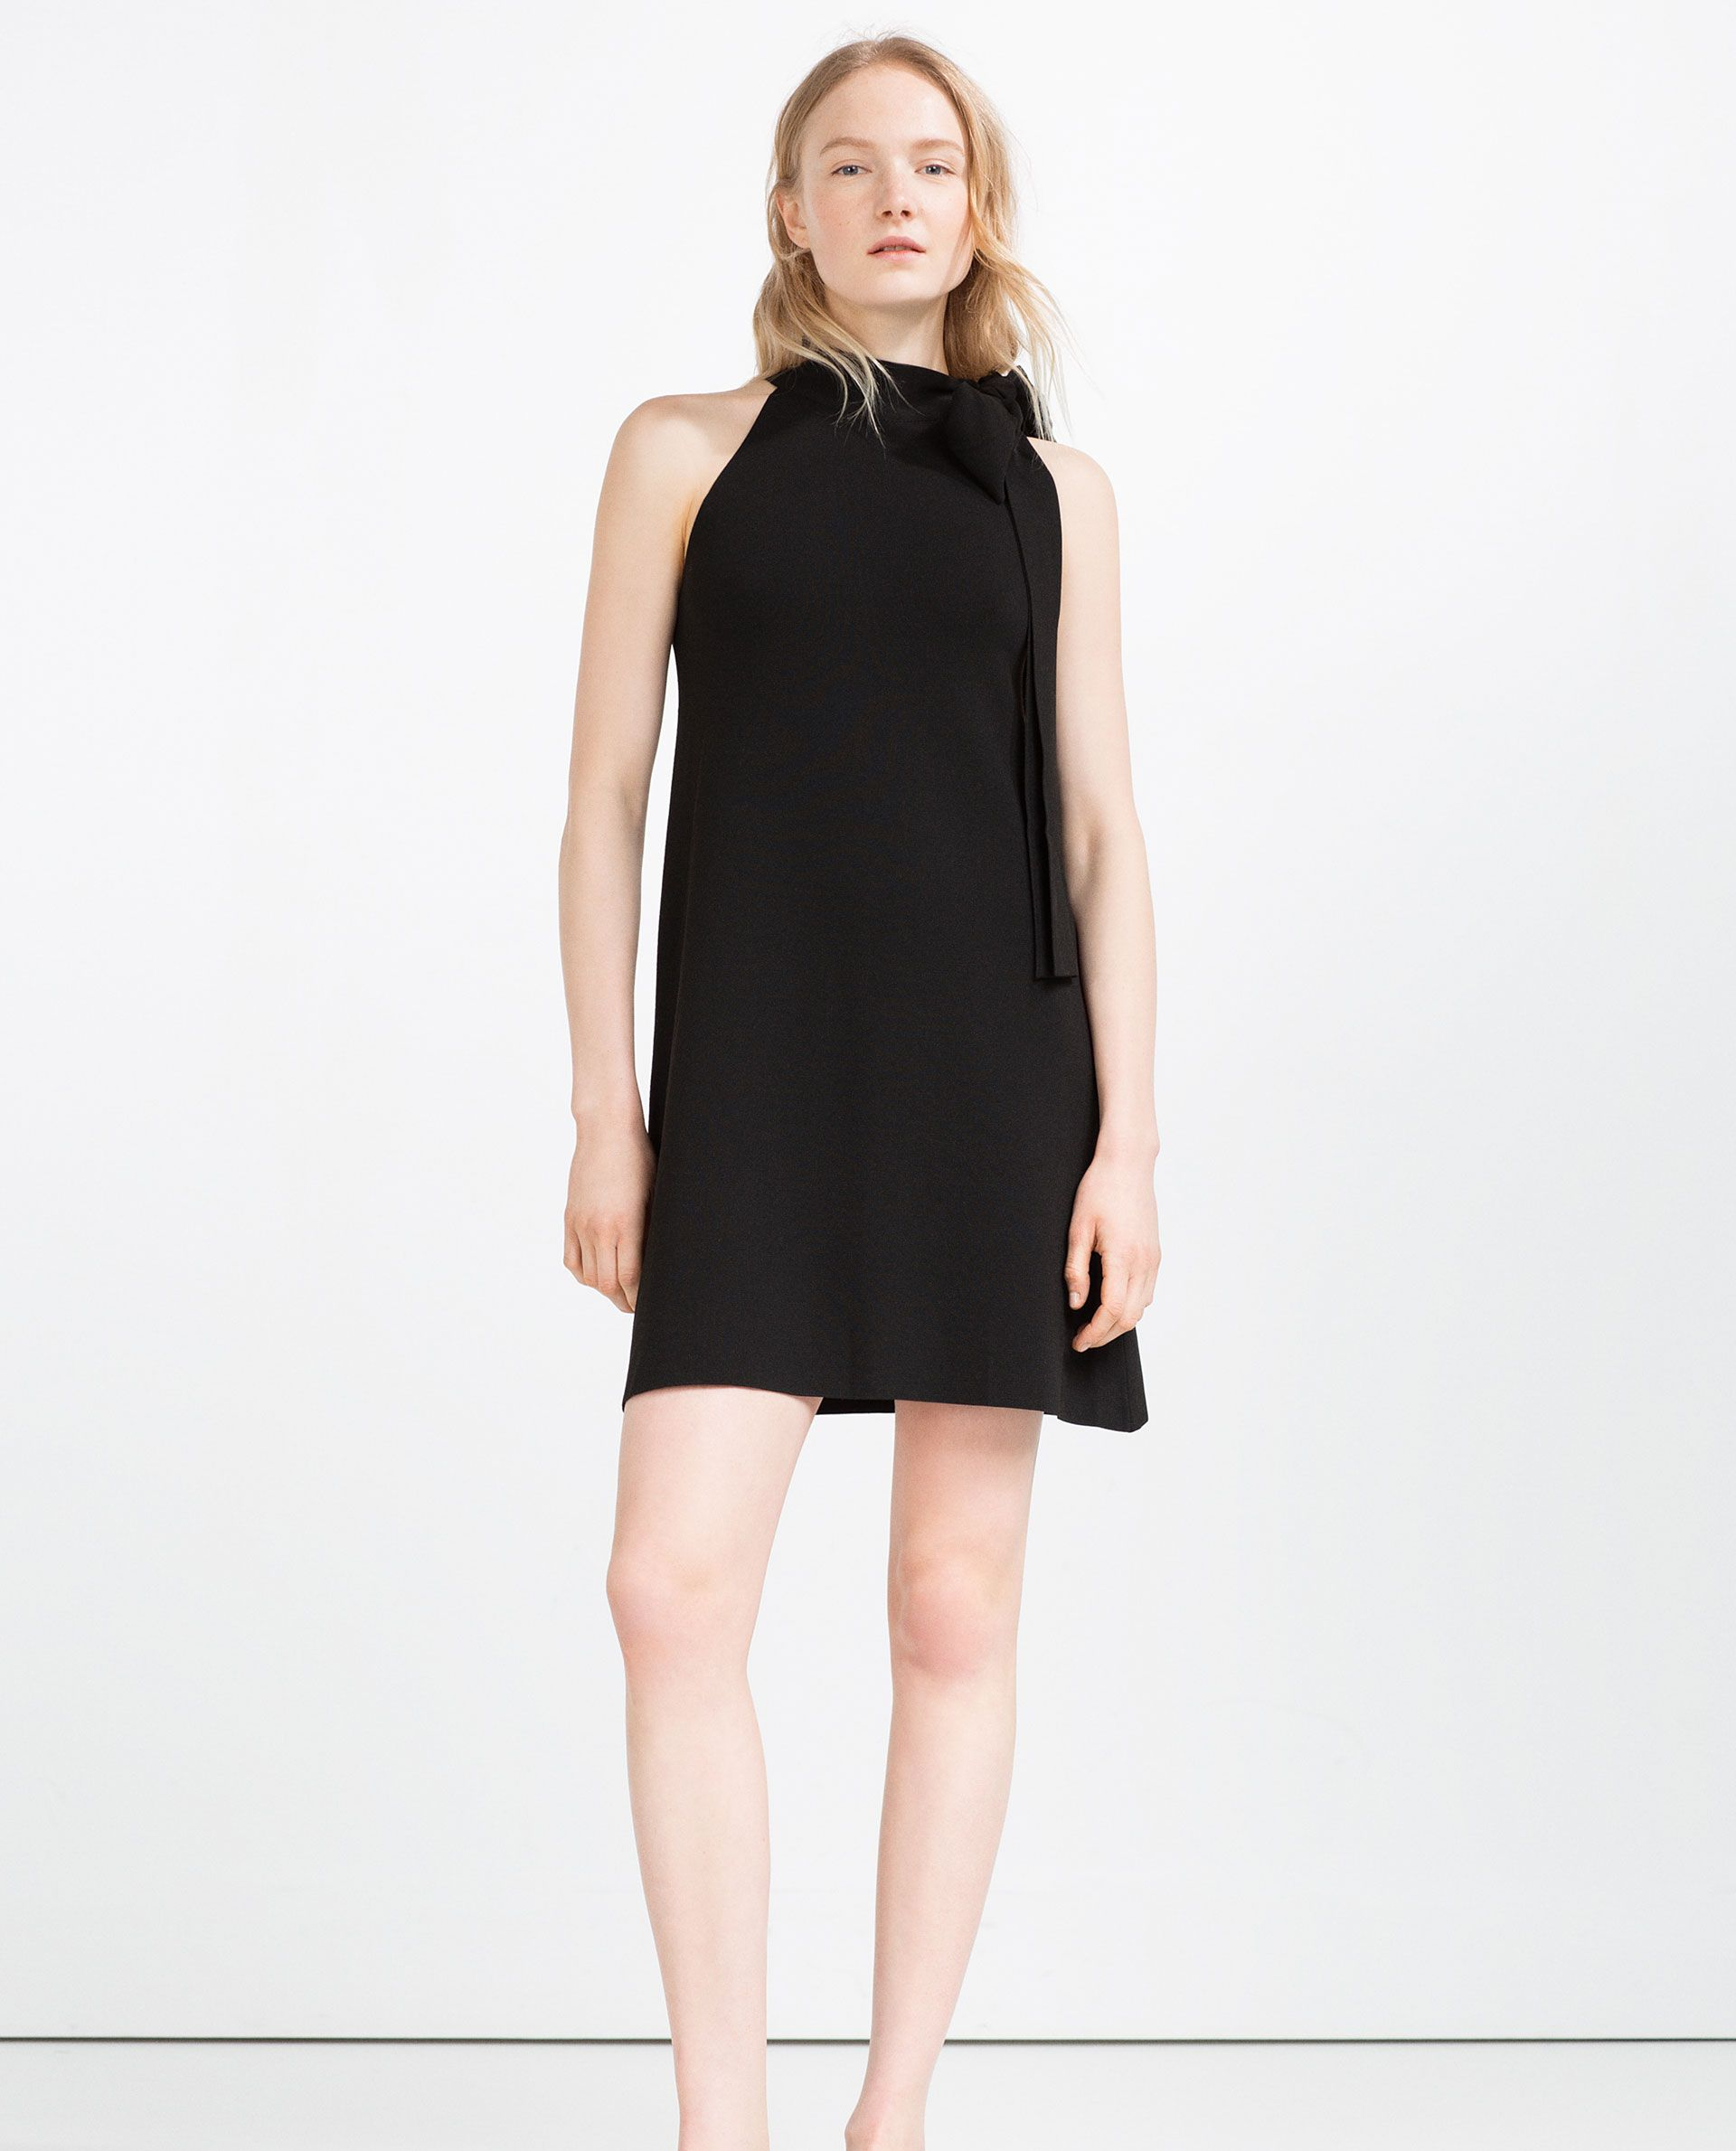 Image of halterneck dress from zara my styles pinterest of